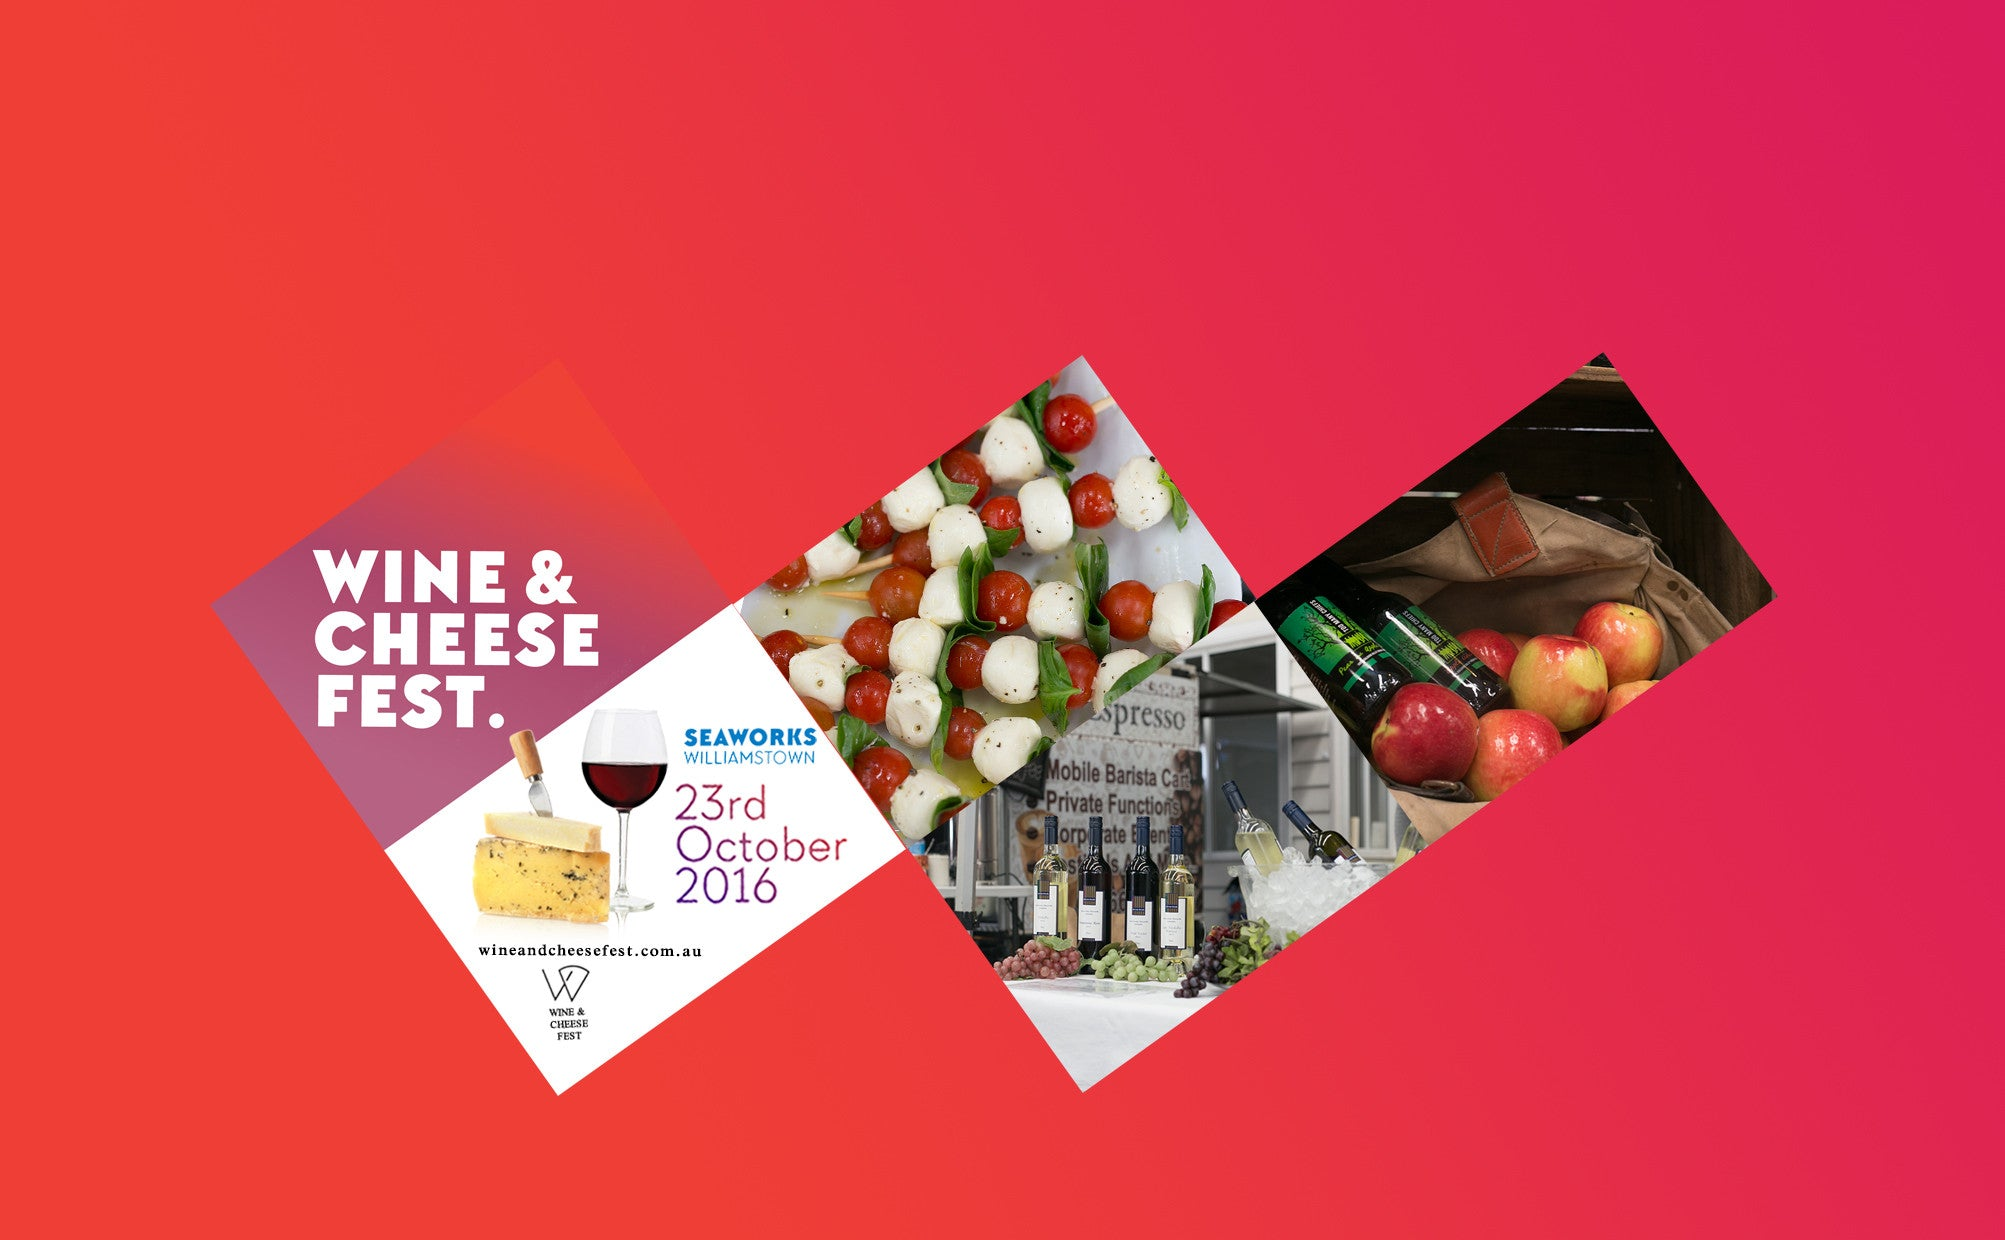 Melbourne Wine & Cheese Festival 2016